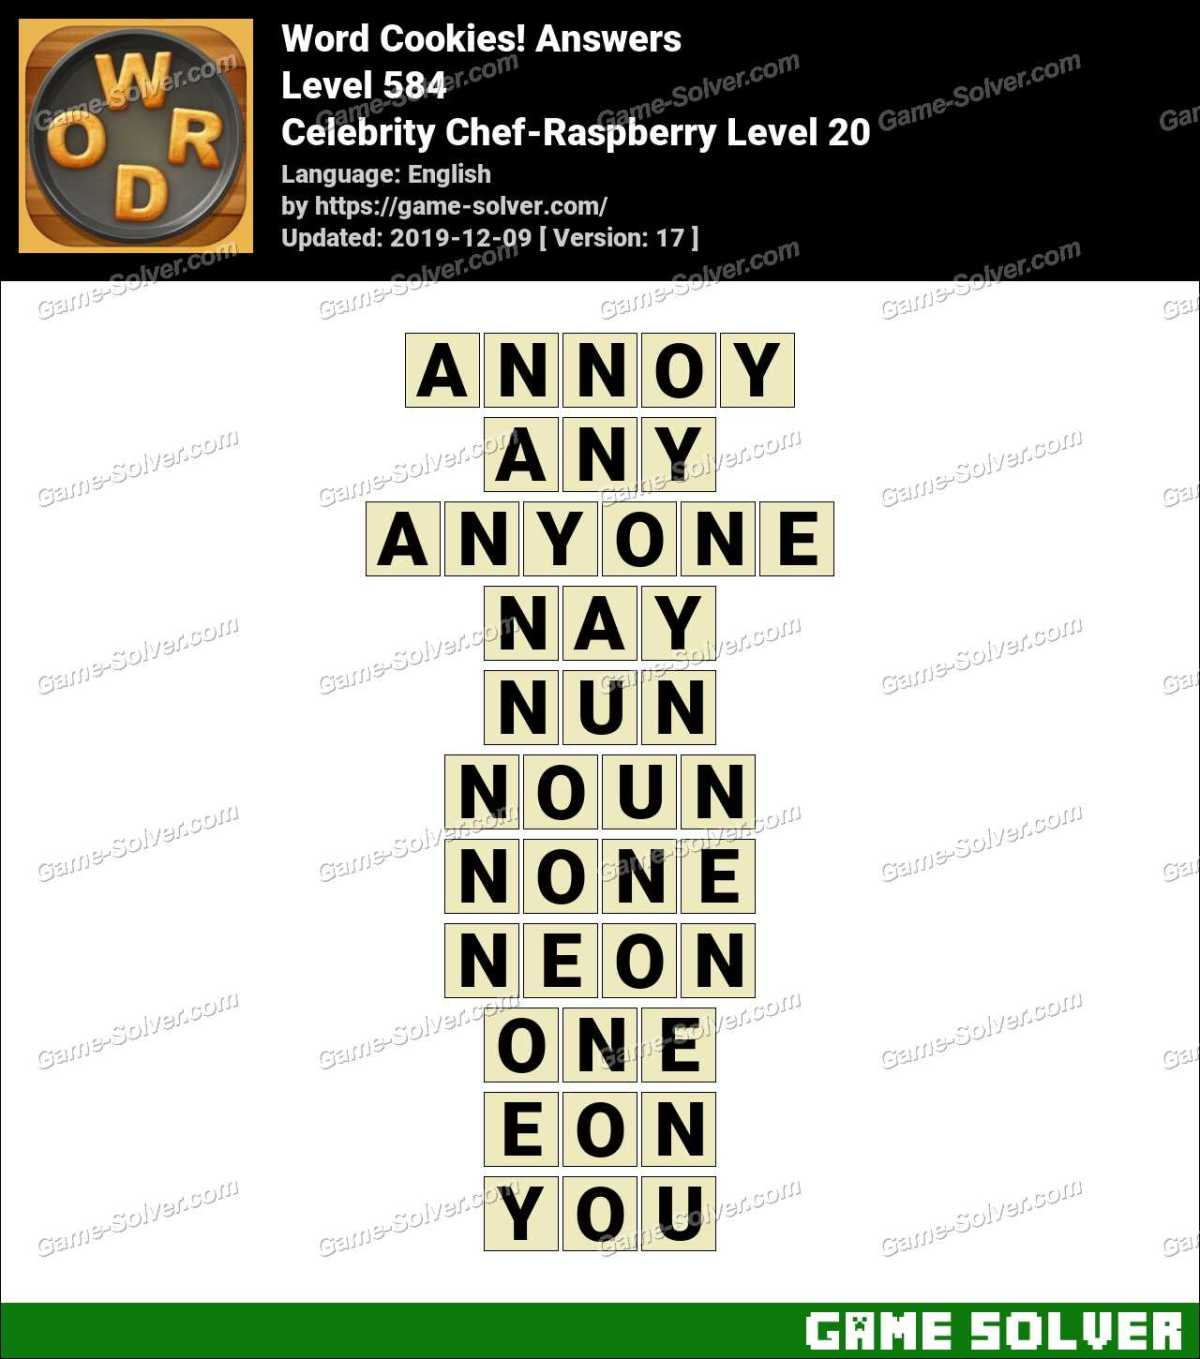 Word Cookies Celebrity Chef-Raspberry Level 20 Answers